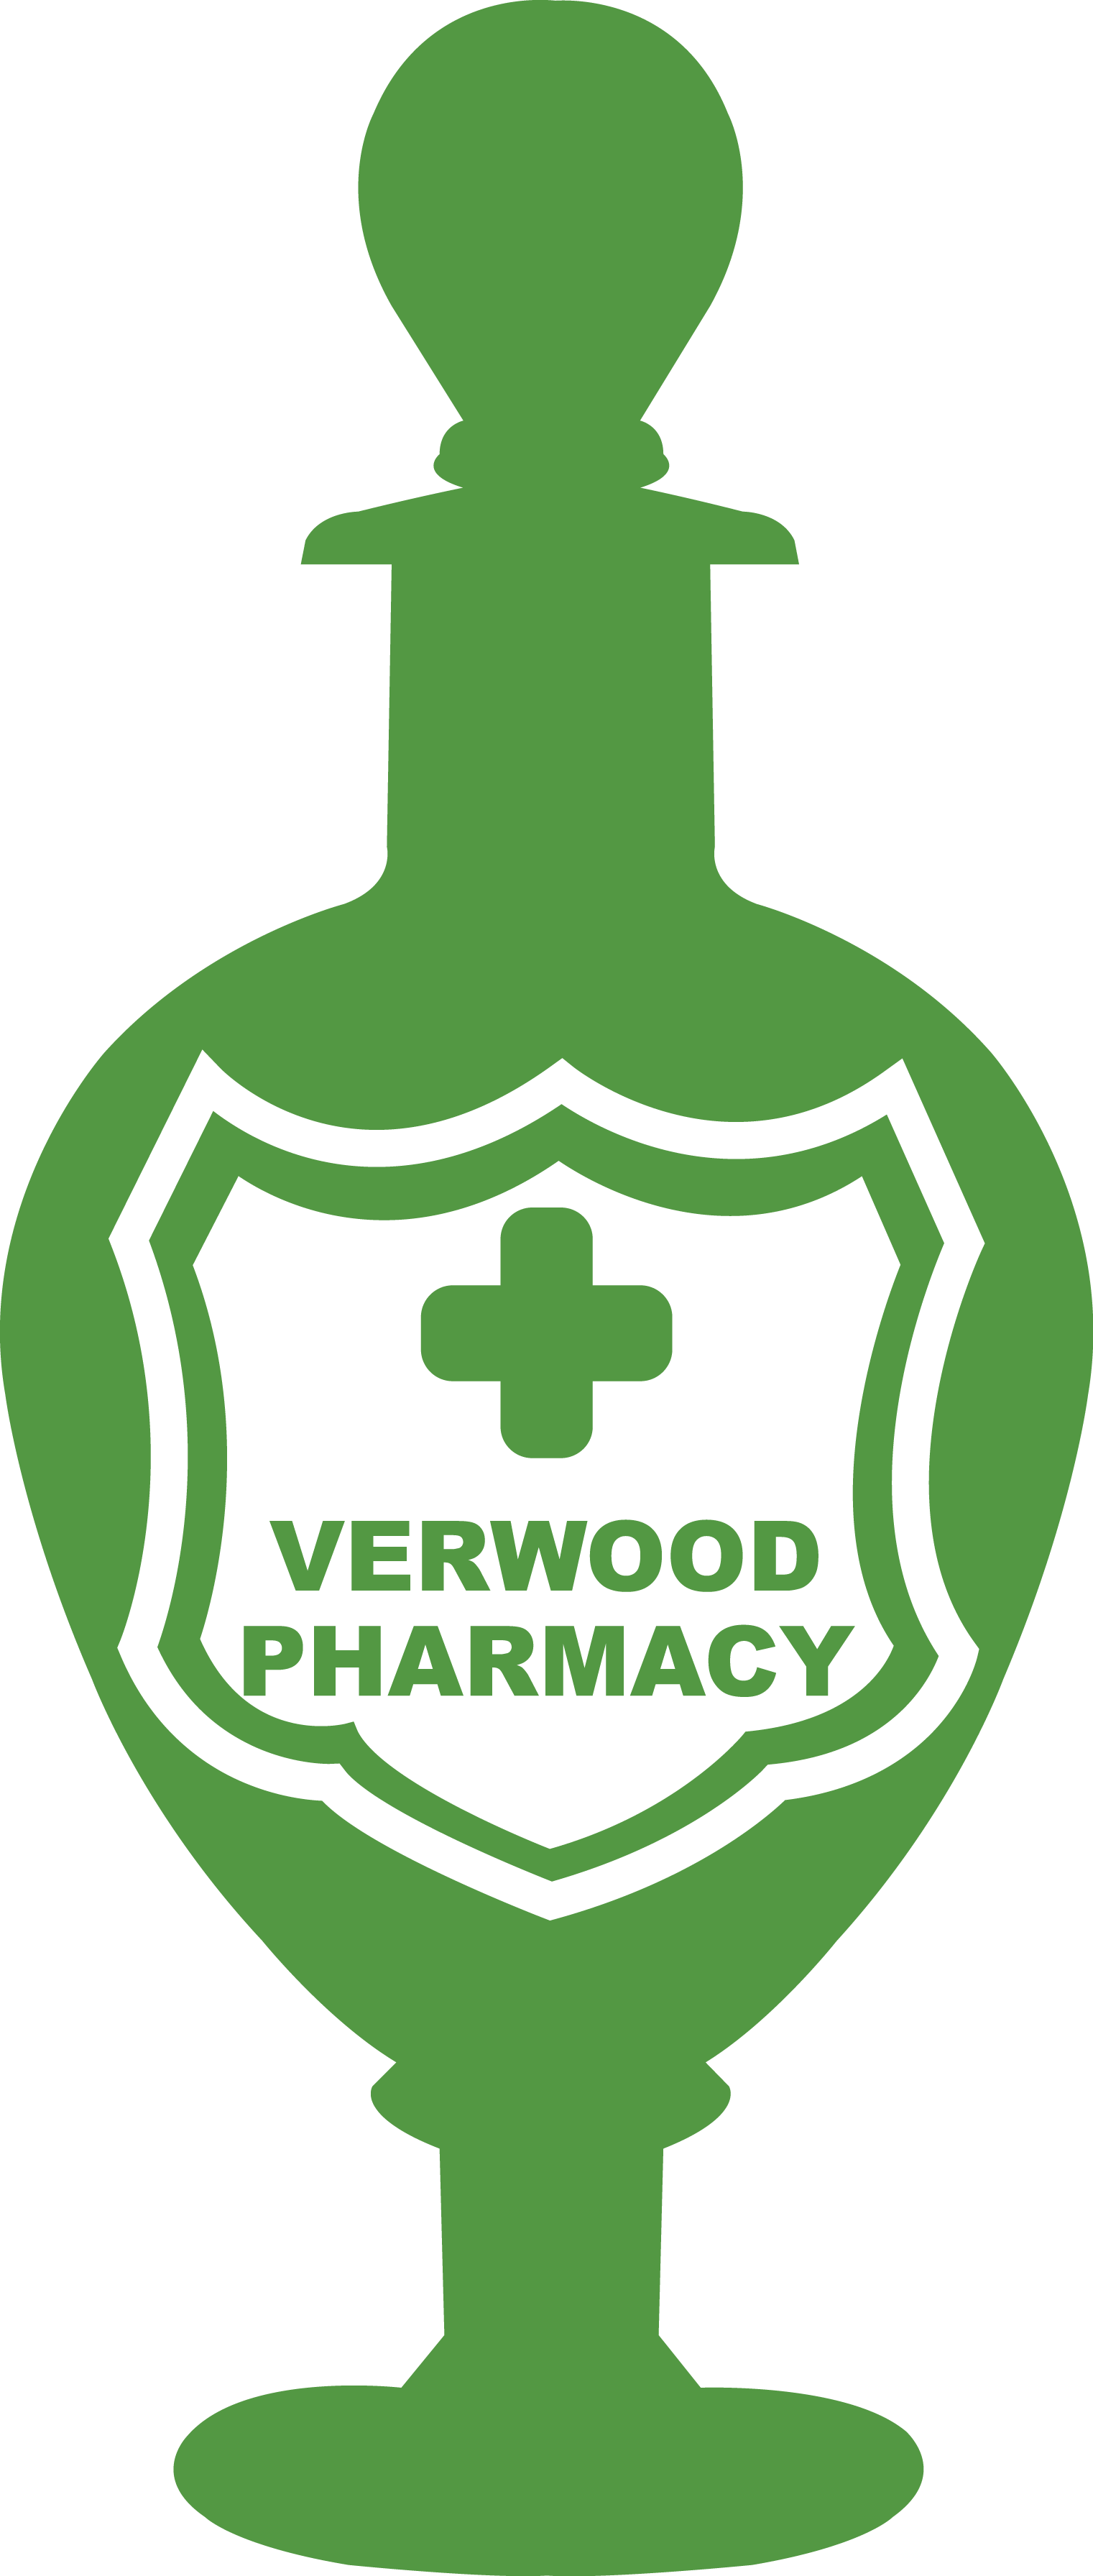 Verwood Pharmacy